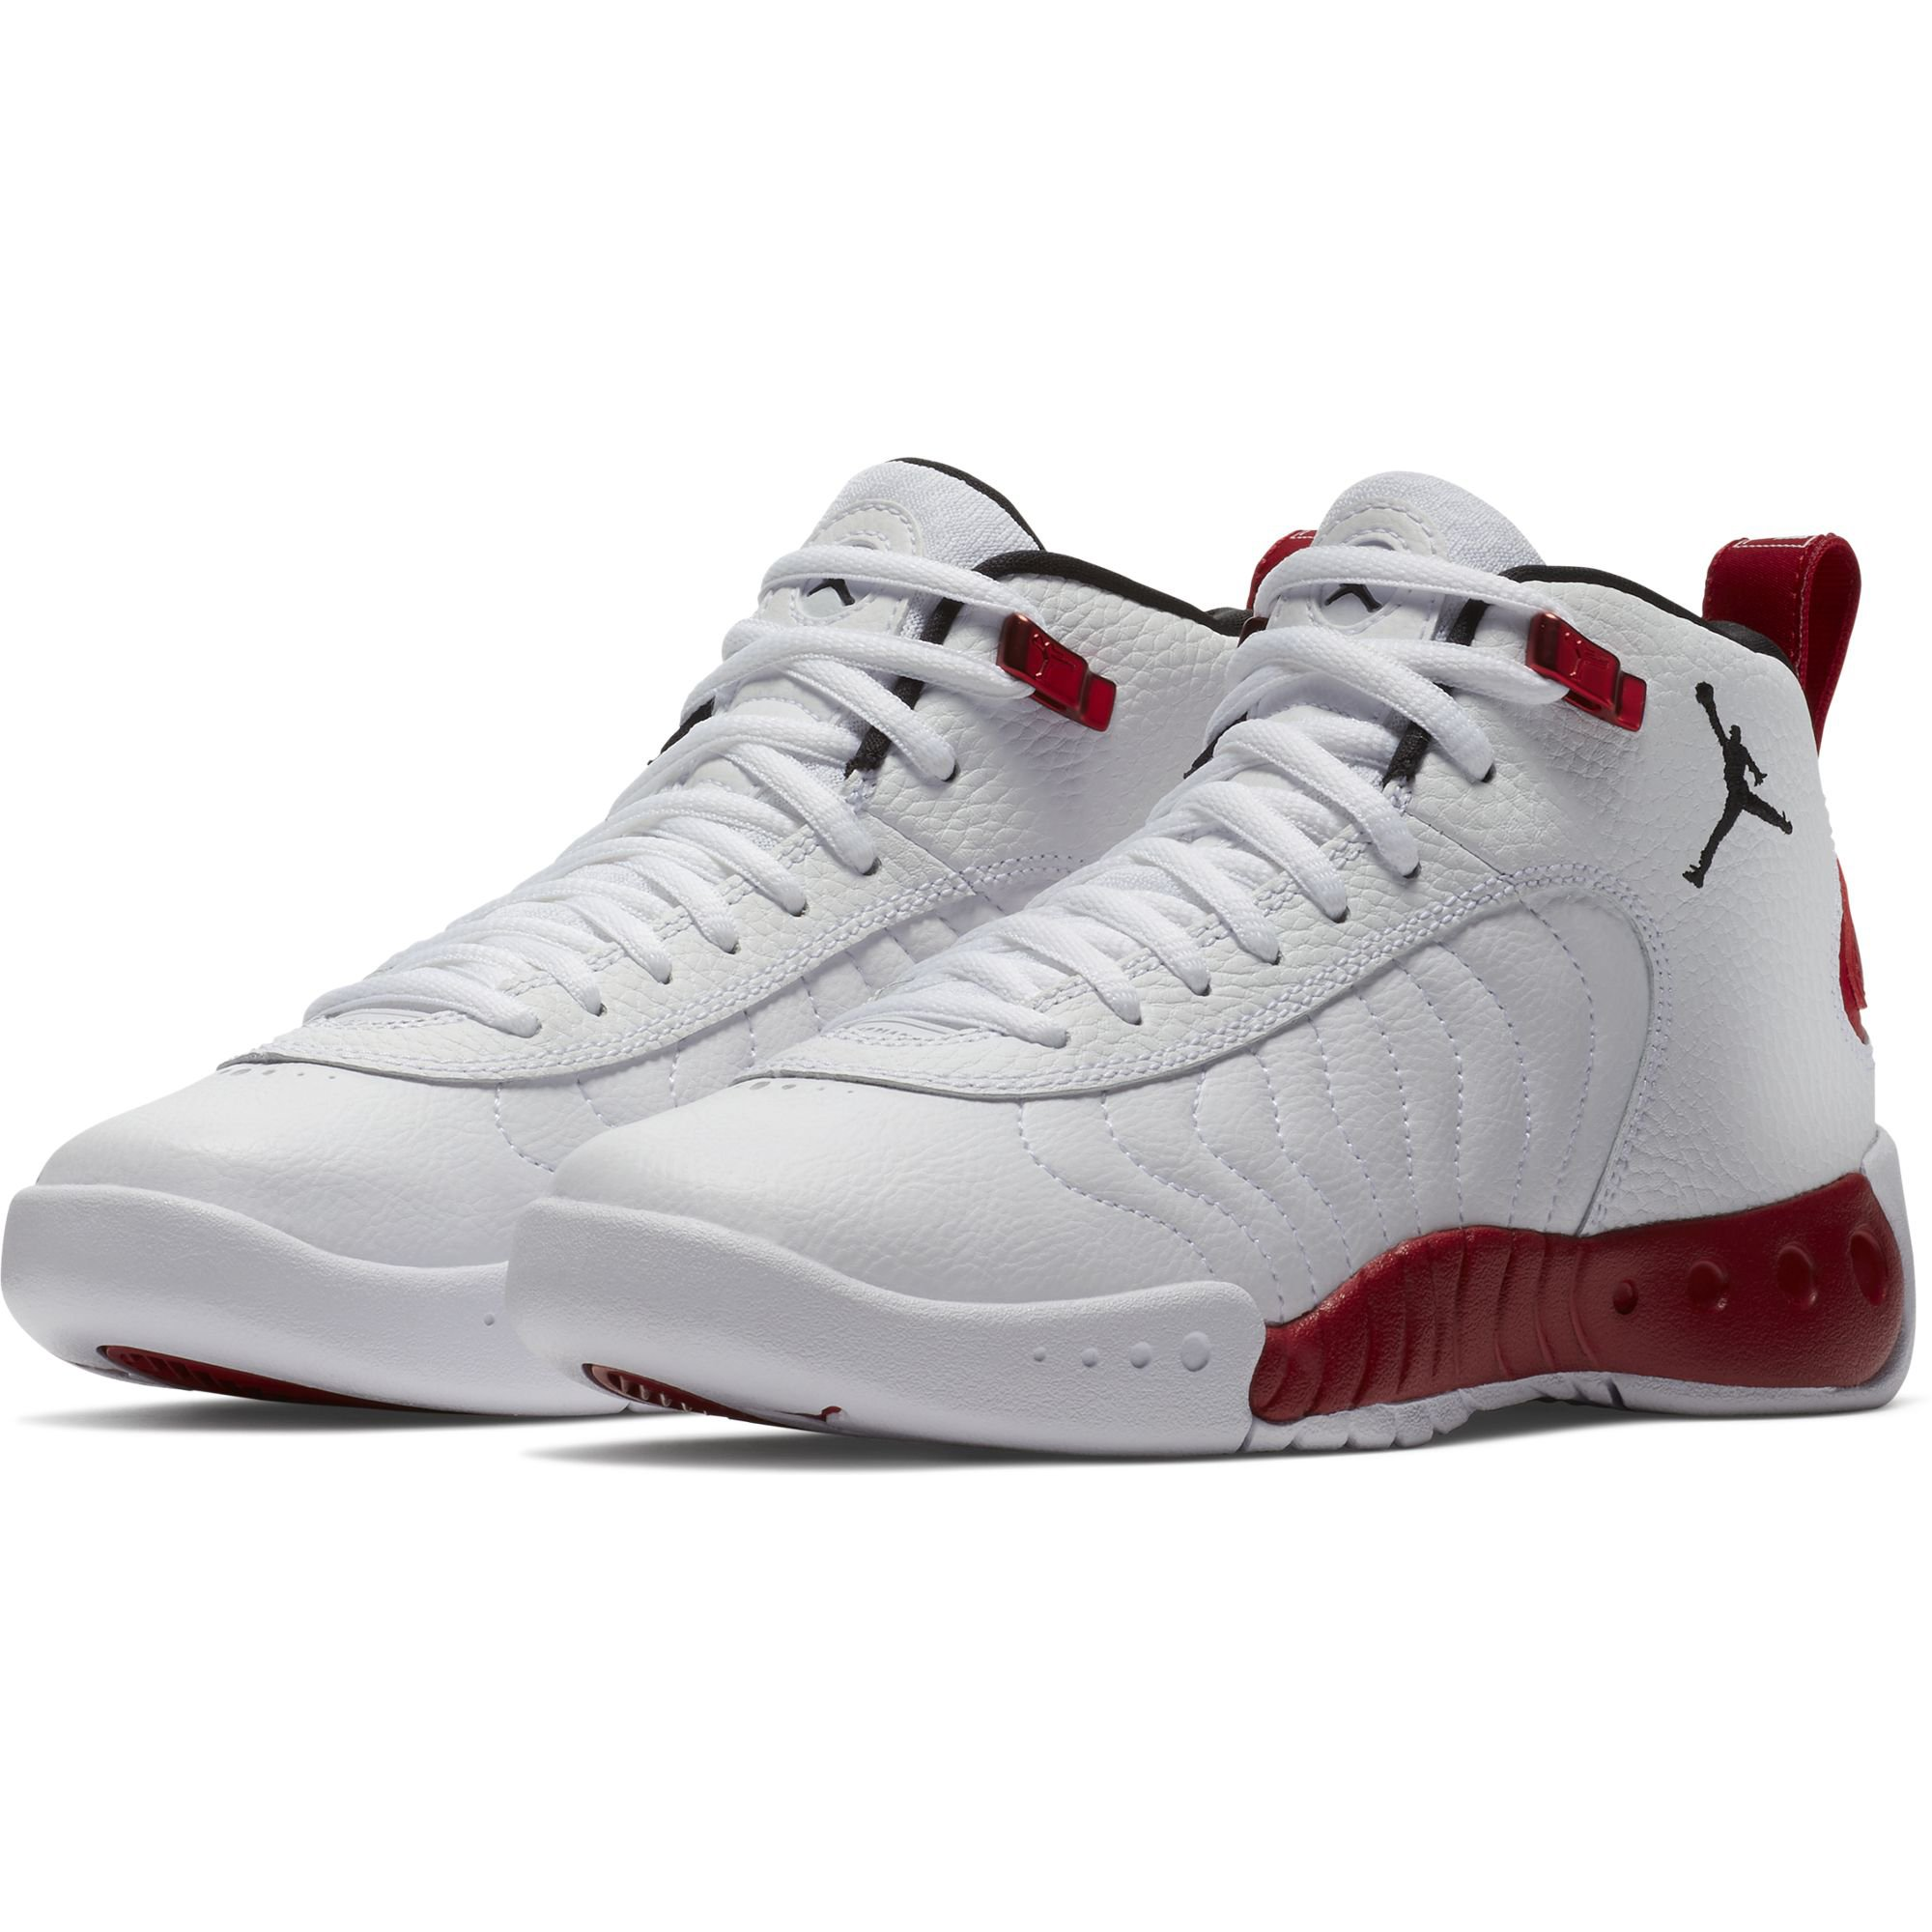 0548def125f68d ... air jordan jumpman pro strong afce8 6754b  official store jordan nike  907973 120 jordan boys jumpman pro basketball shoe white black gym red